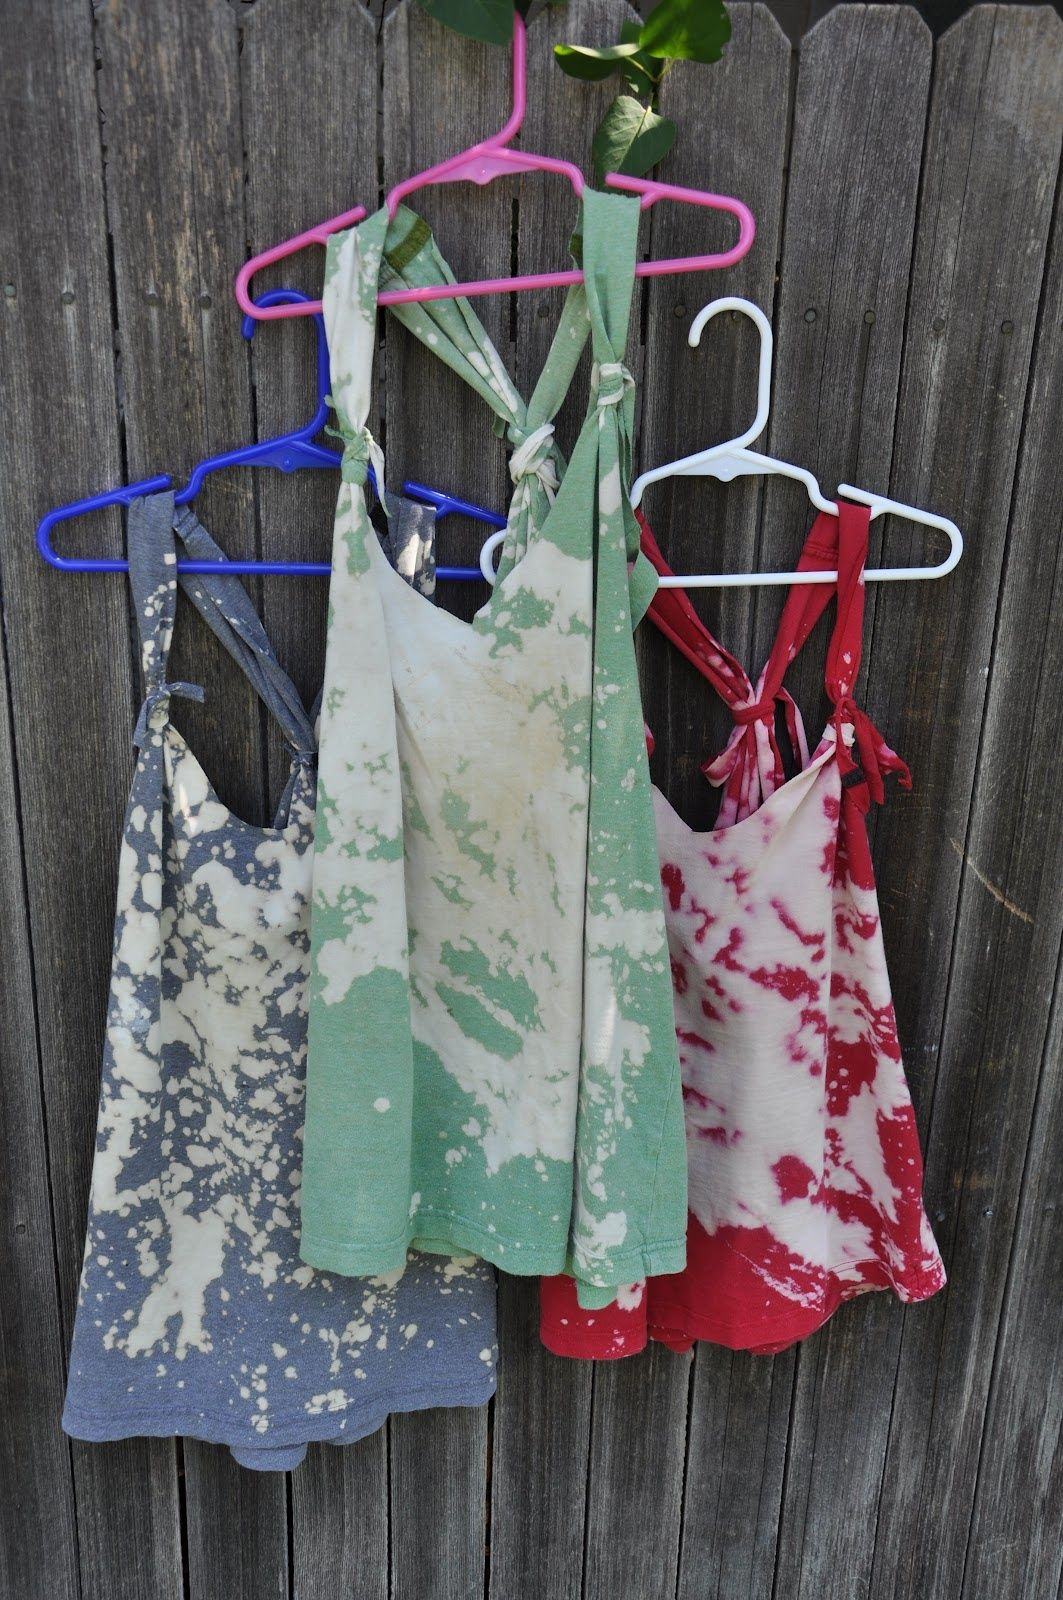 A great cover up this summer diy swimsuit diy bathing